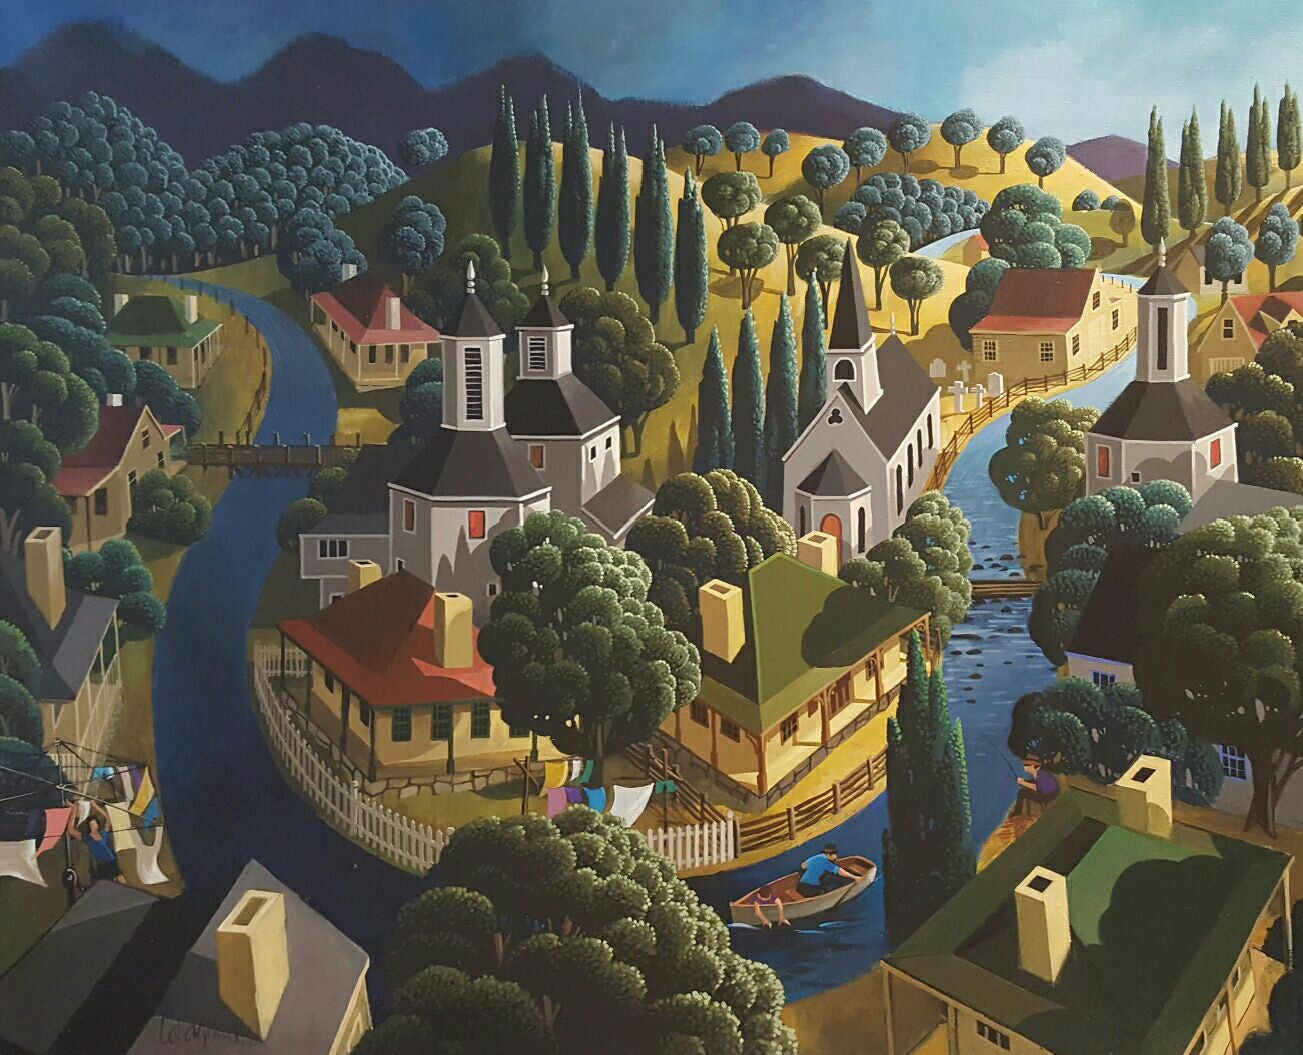 George Callaghan Painting ~ 'Life on the Derwent' - Gallery Salamanca